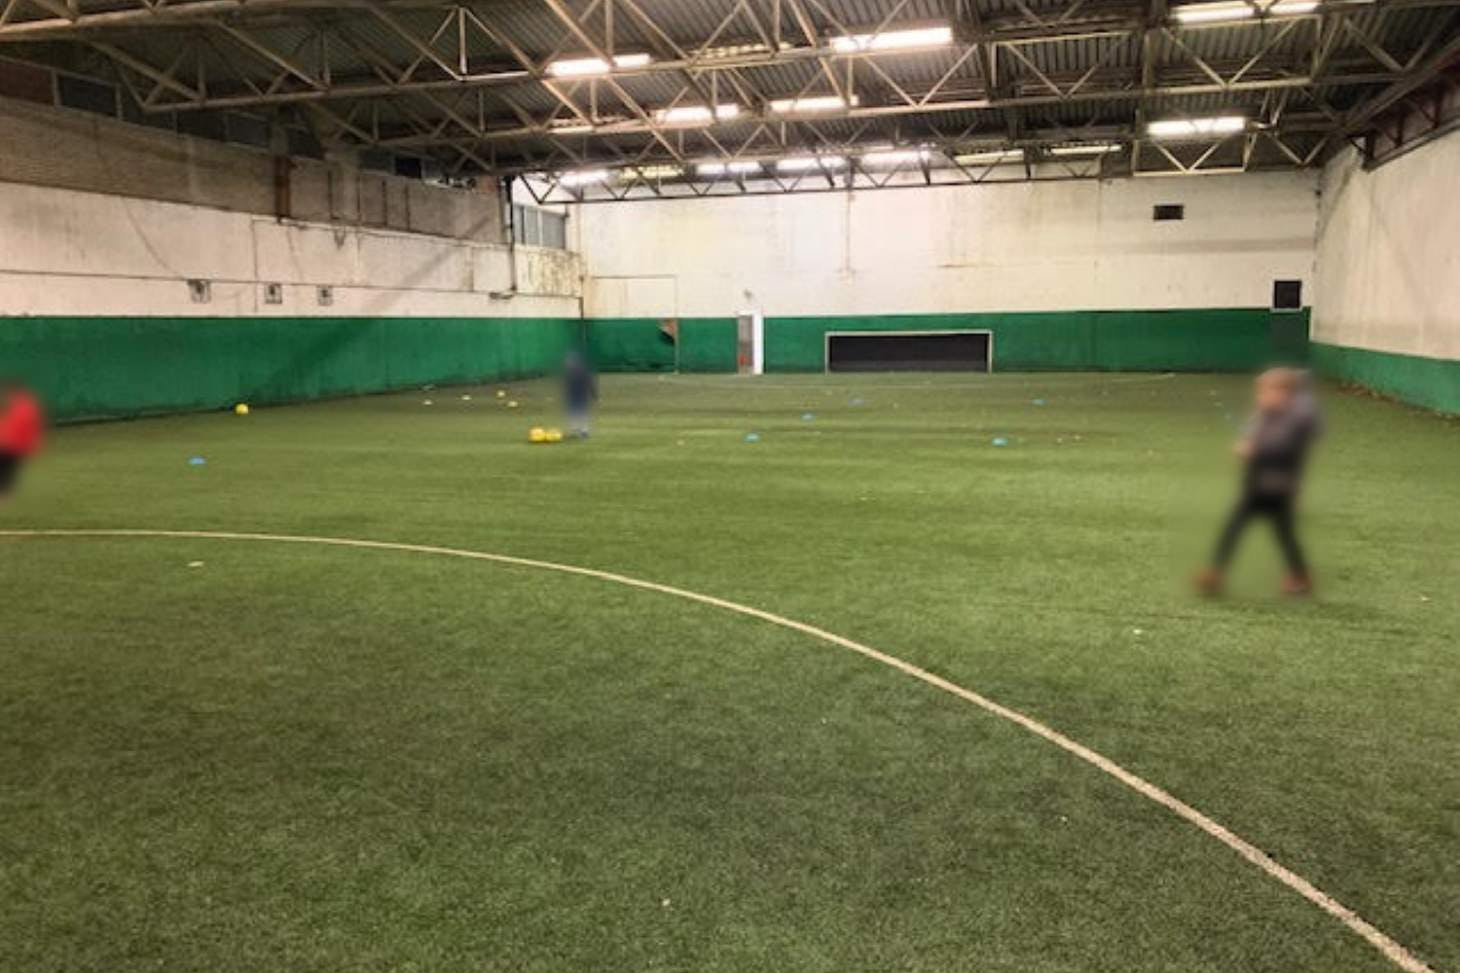 Crystal Palace National Sports Centre 5 a side | 3G Astroturf football pitch